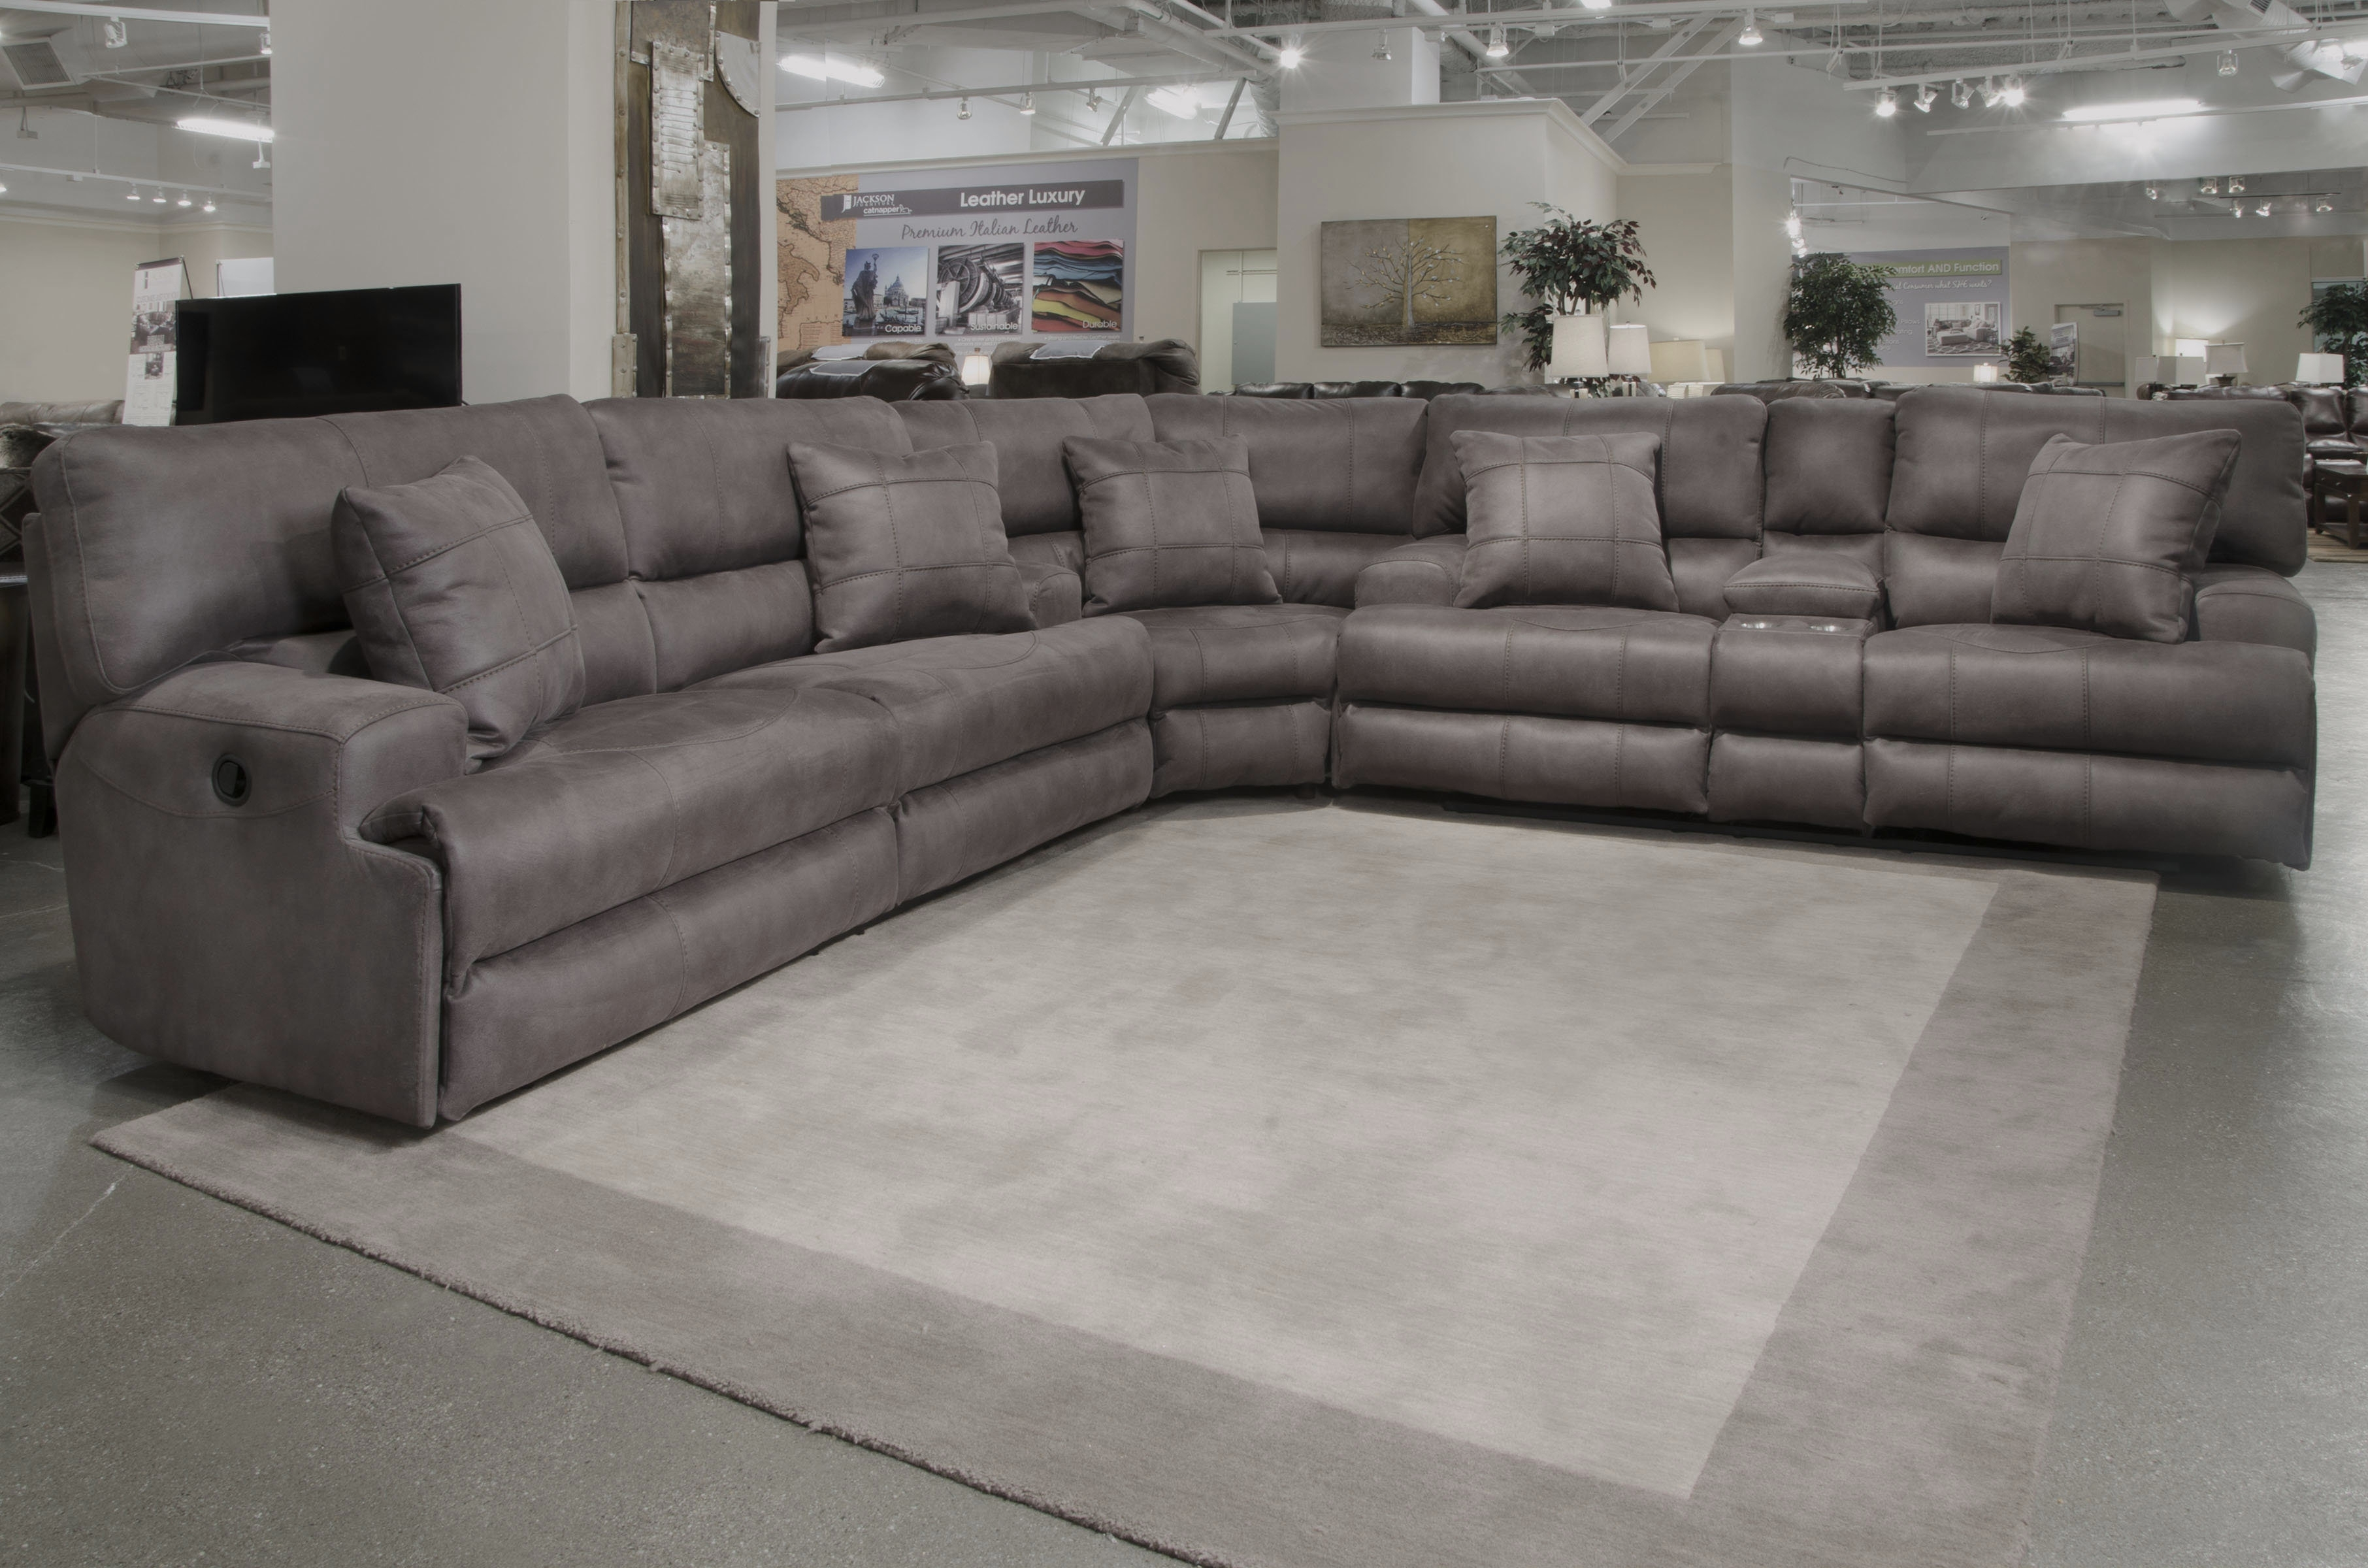 Catnapper Monaco Reclining Sectional | Wayfair Inside Jackson 6 Piece Power Reclining Sectionals With  Sleeper (Image 11 of 25)